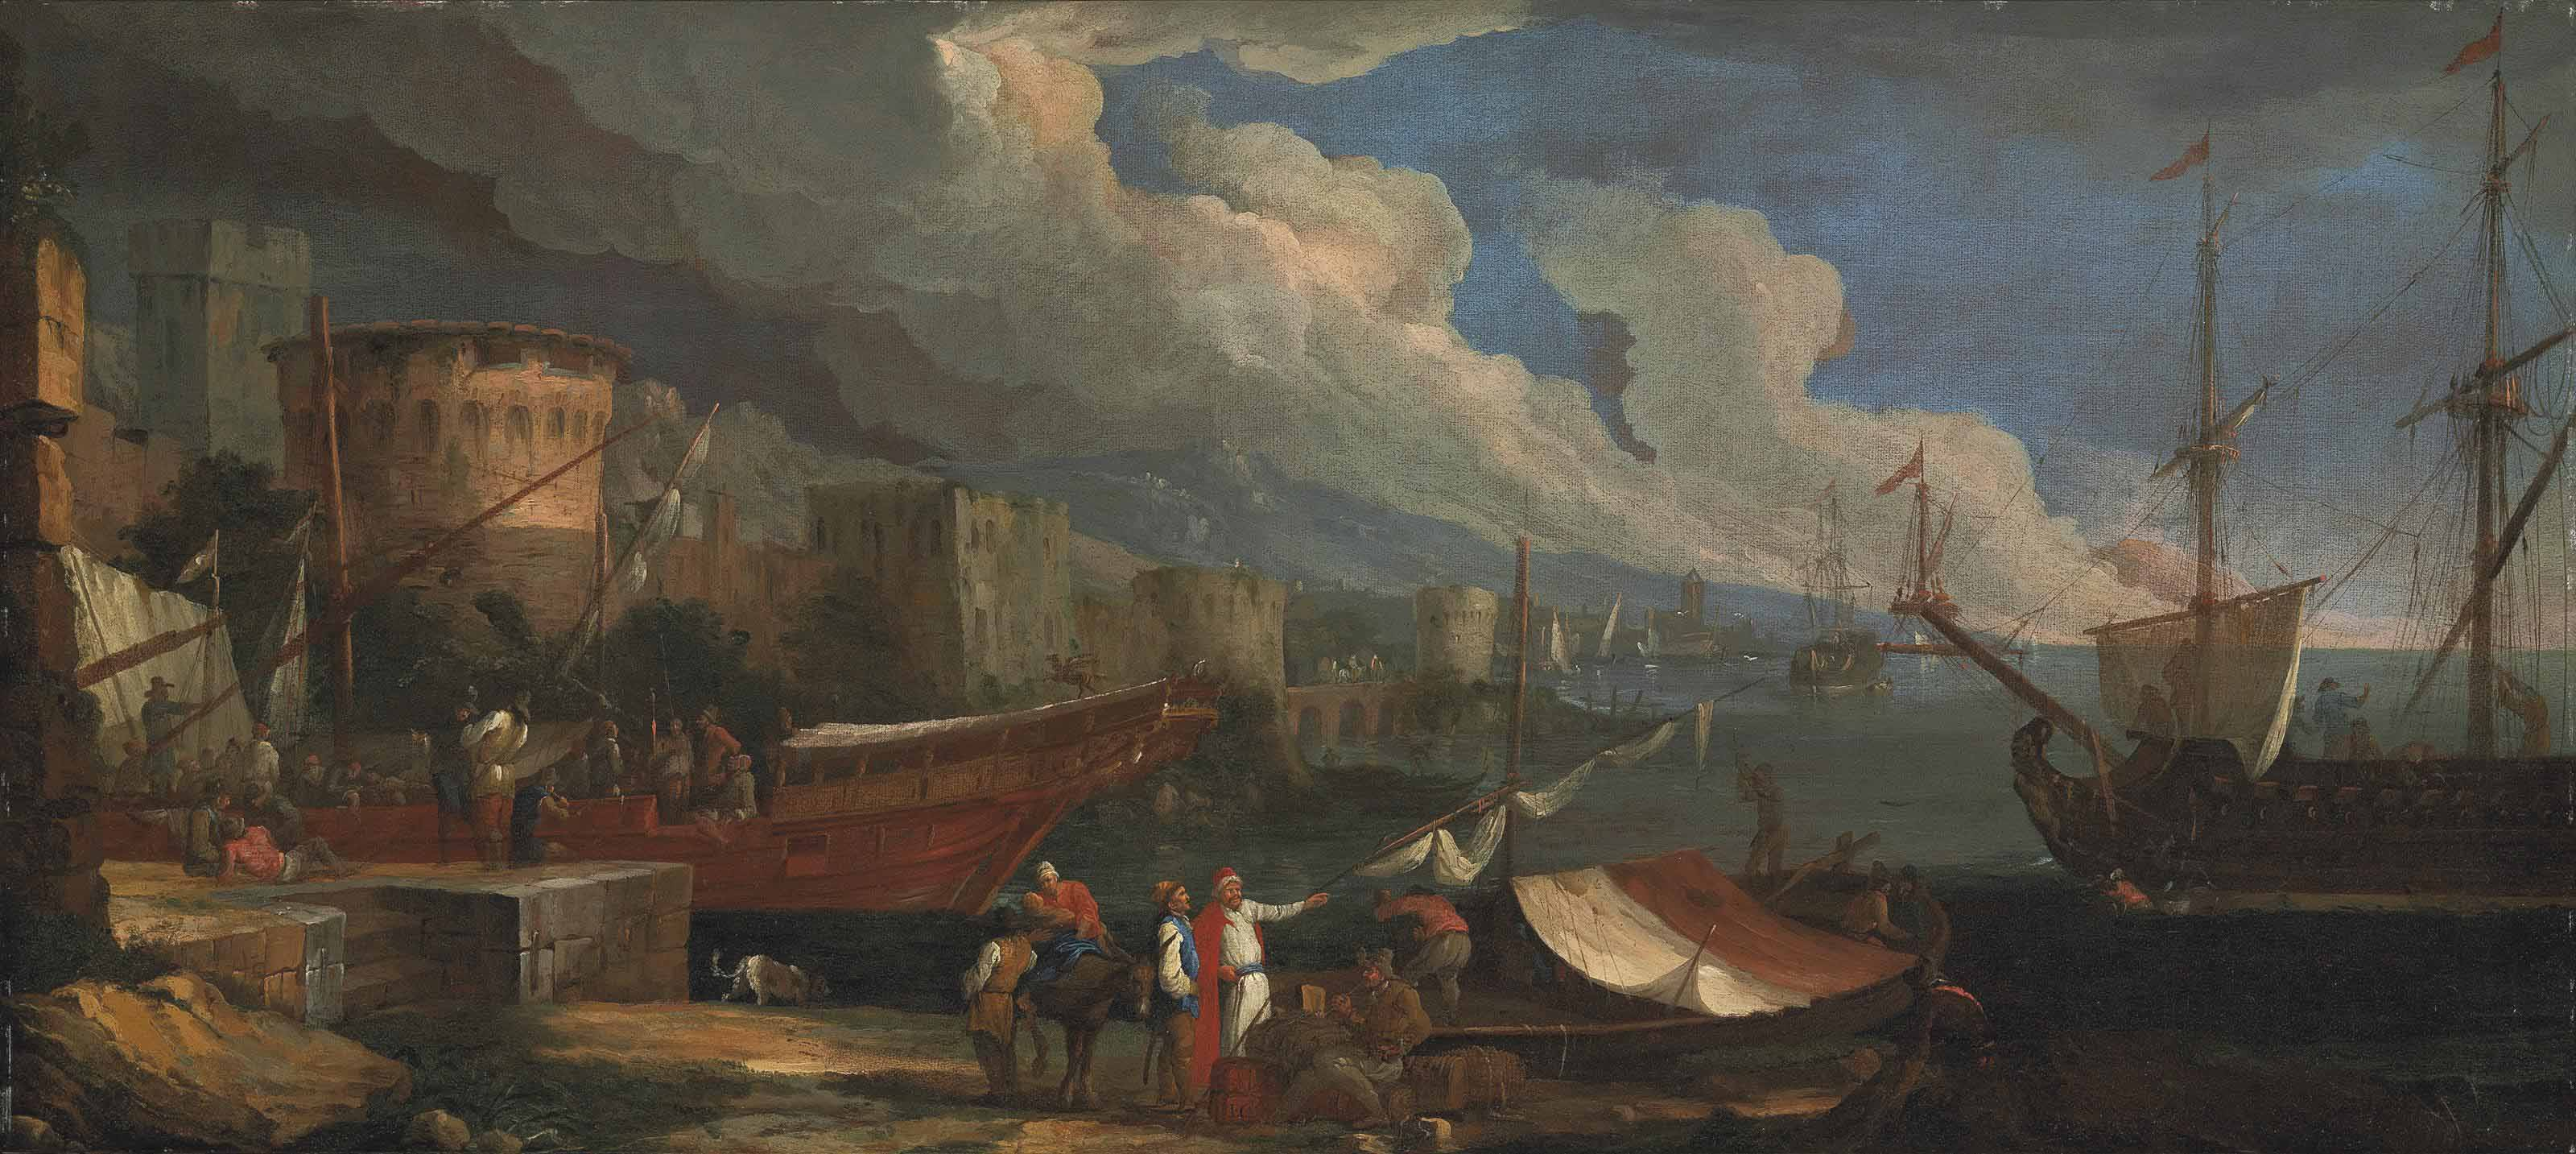 A coastal landscape with figures conversing on the harbour and anchored ships beyond